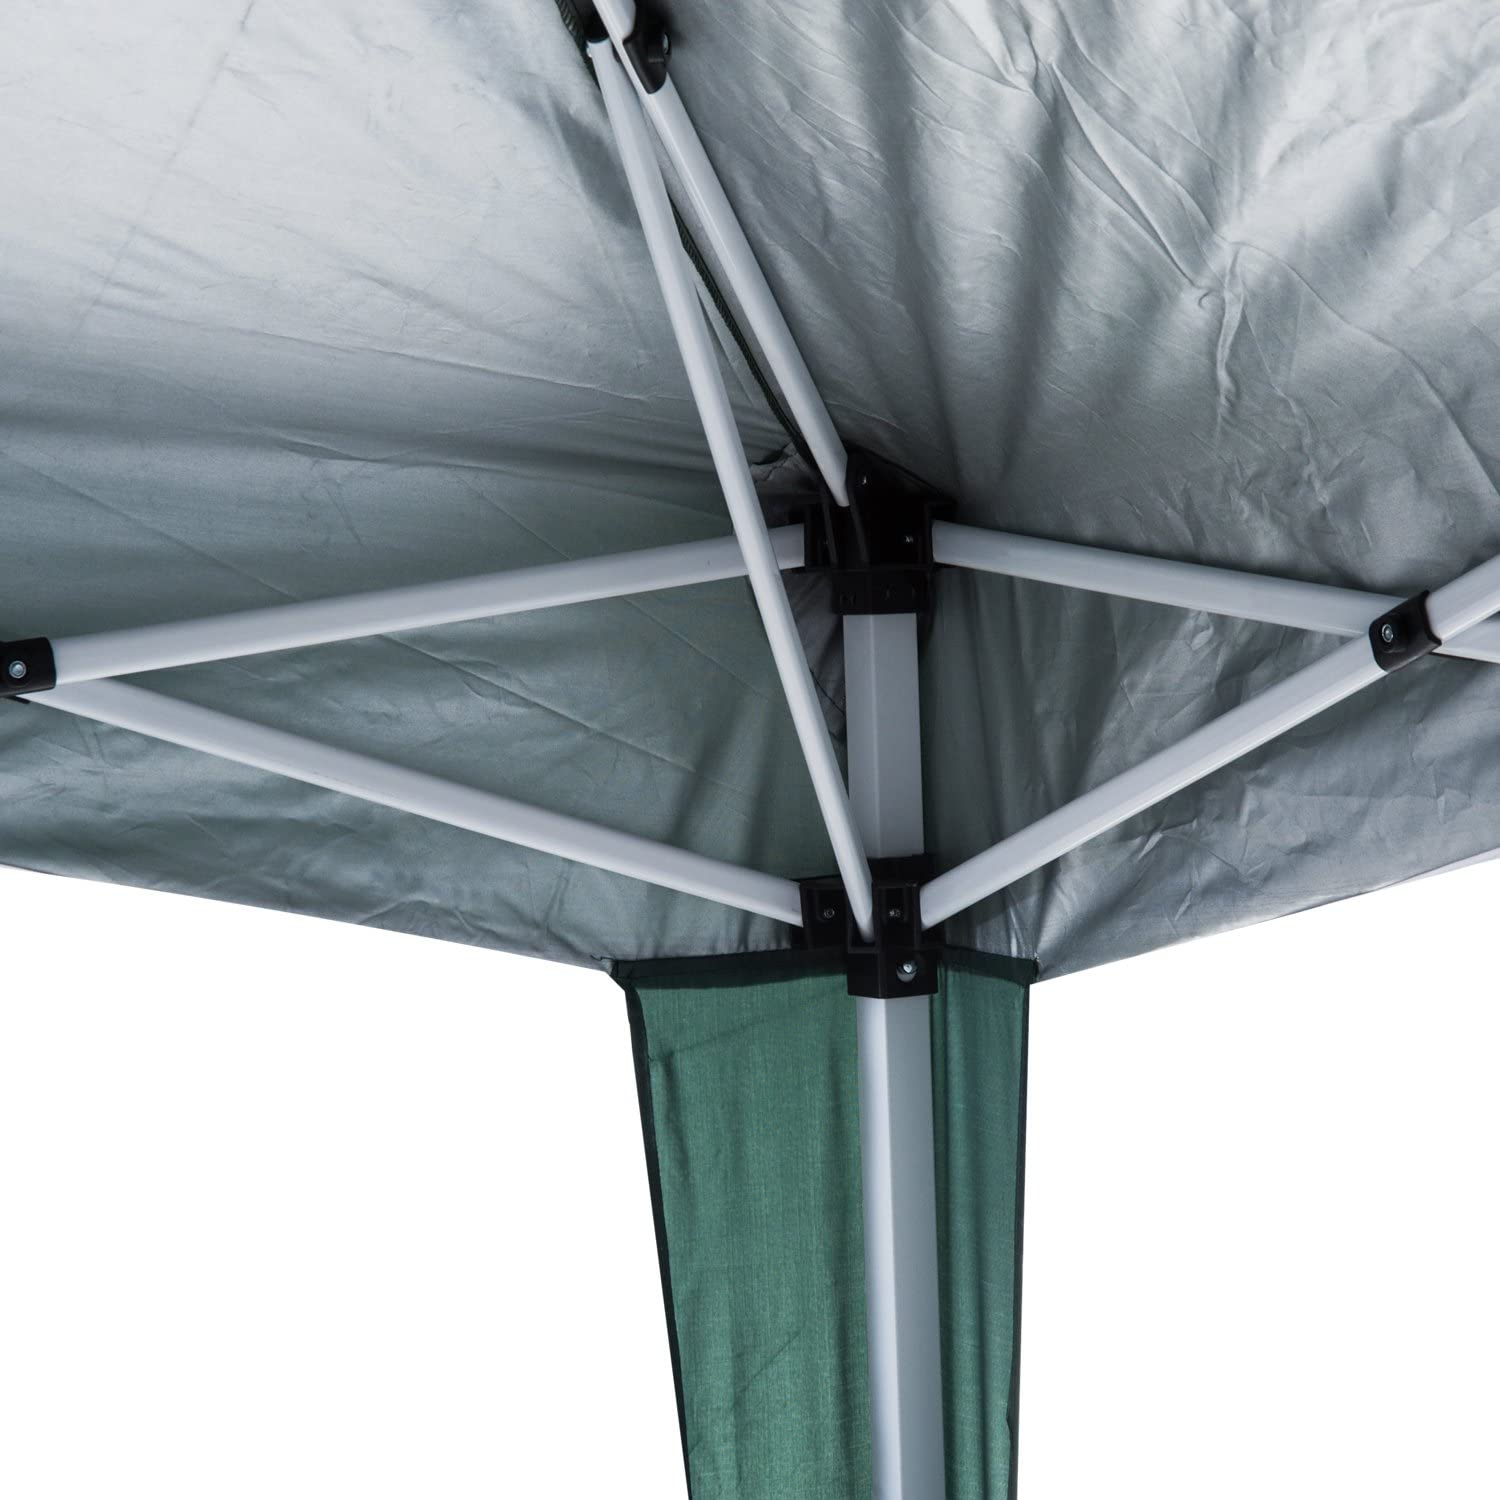 Outsunny 3M x 3M Pop-up Tent Garden Gazebo Outdoor Awning Heavy Duty Marquee Party Shelter Sun Shade Black